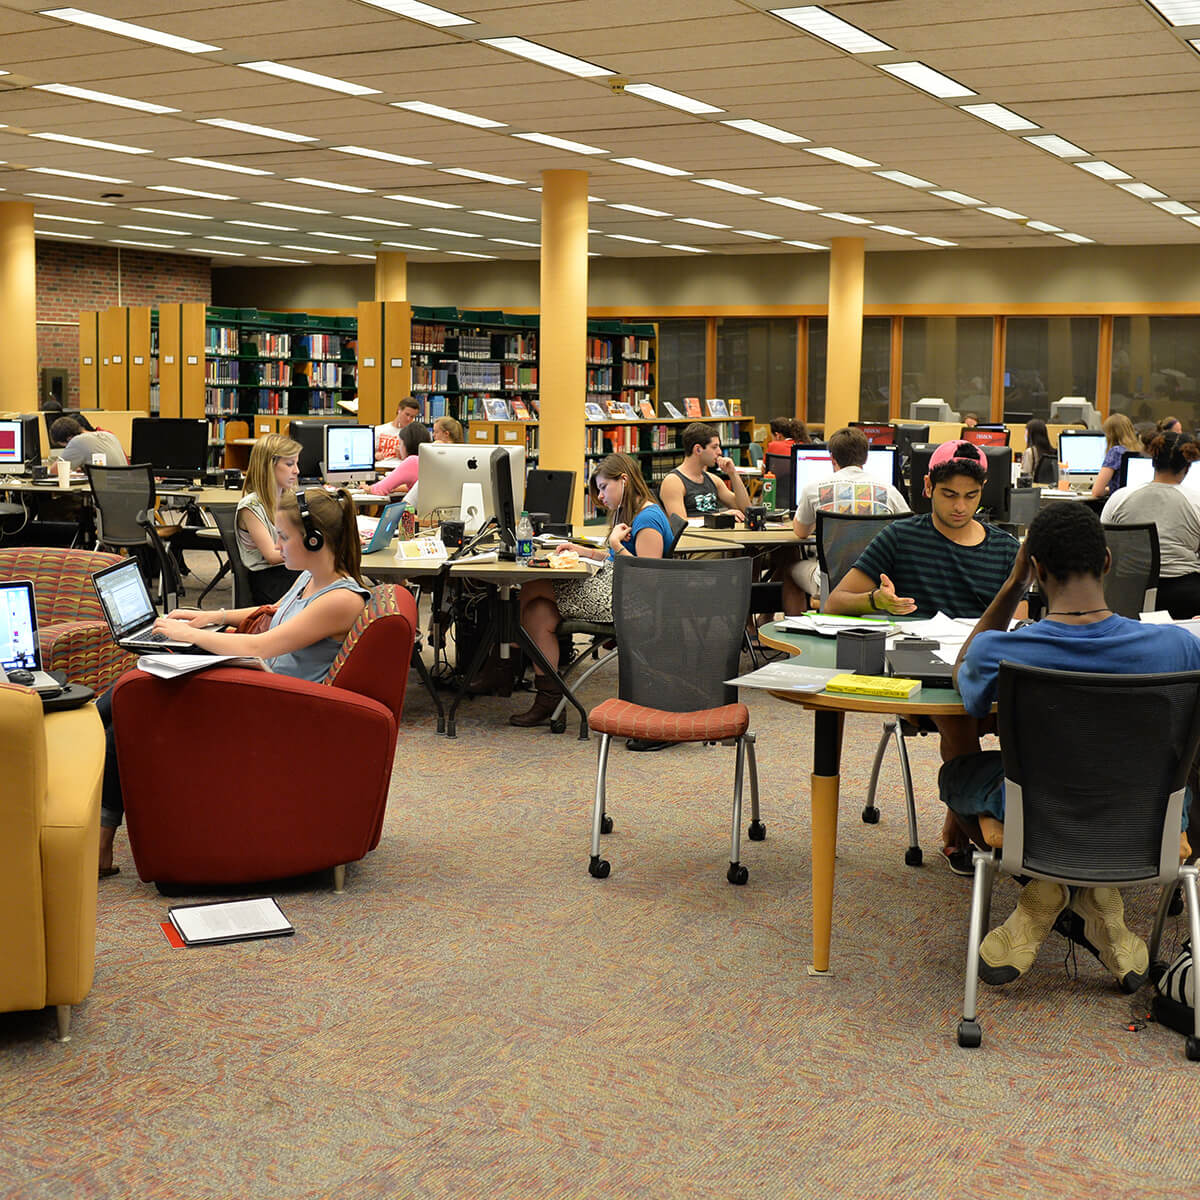 A large group of students studying and working in the library.